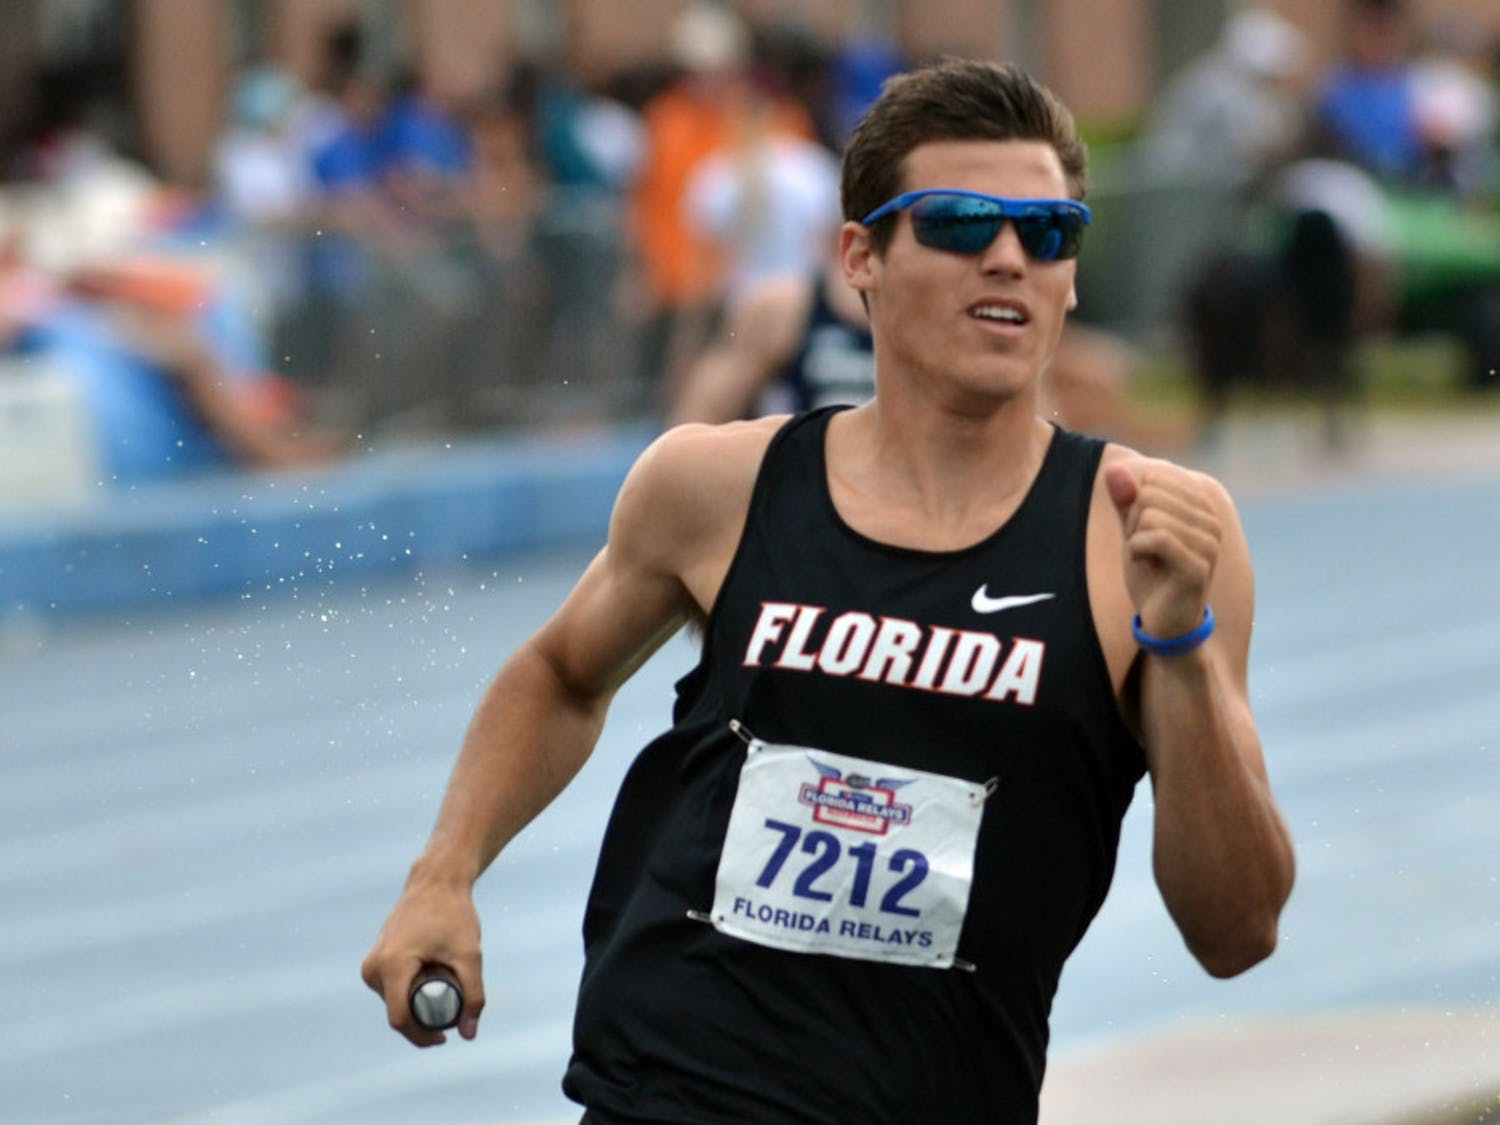 Ryan Schnulle races during the final day of the Florida Relays onApril 4at the Percy Beard Track